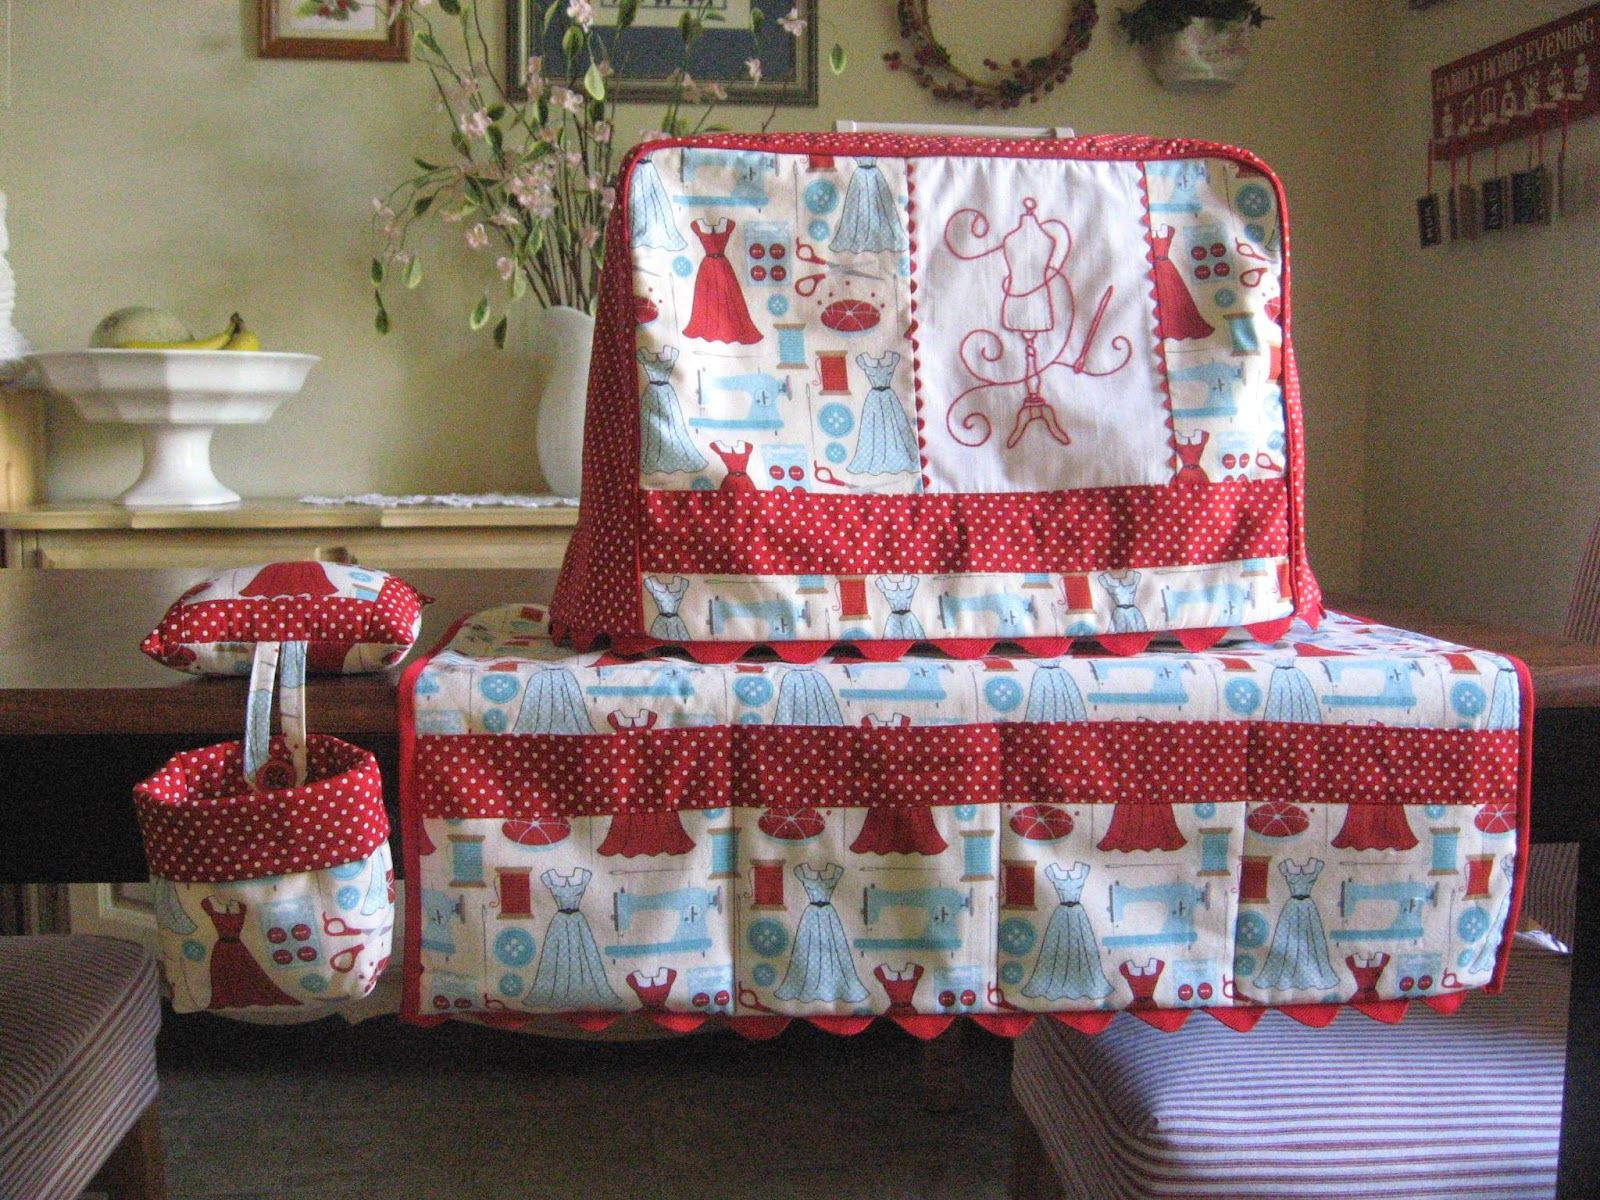 Passion Fruit Princess: A Sewing Machine Cover, Mat, Pincushion, and ...